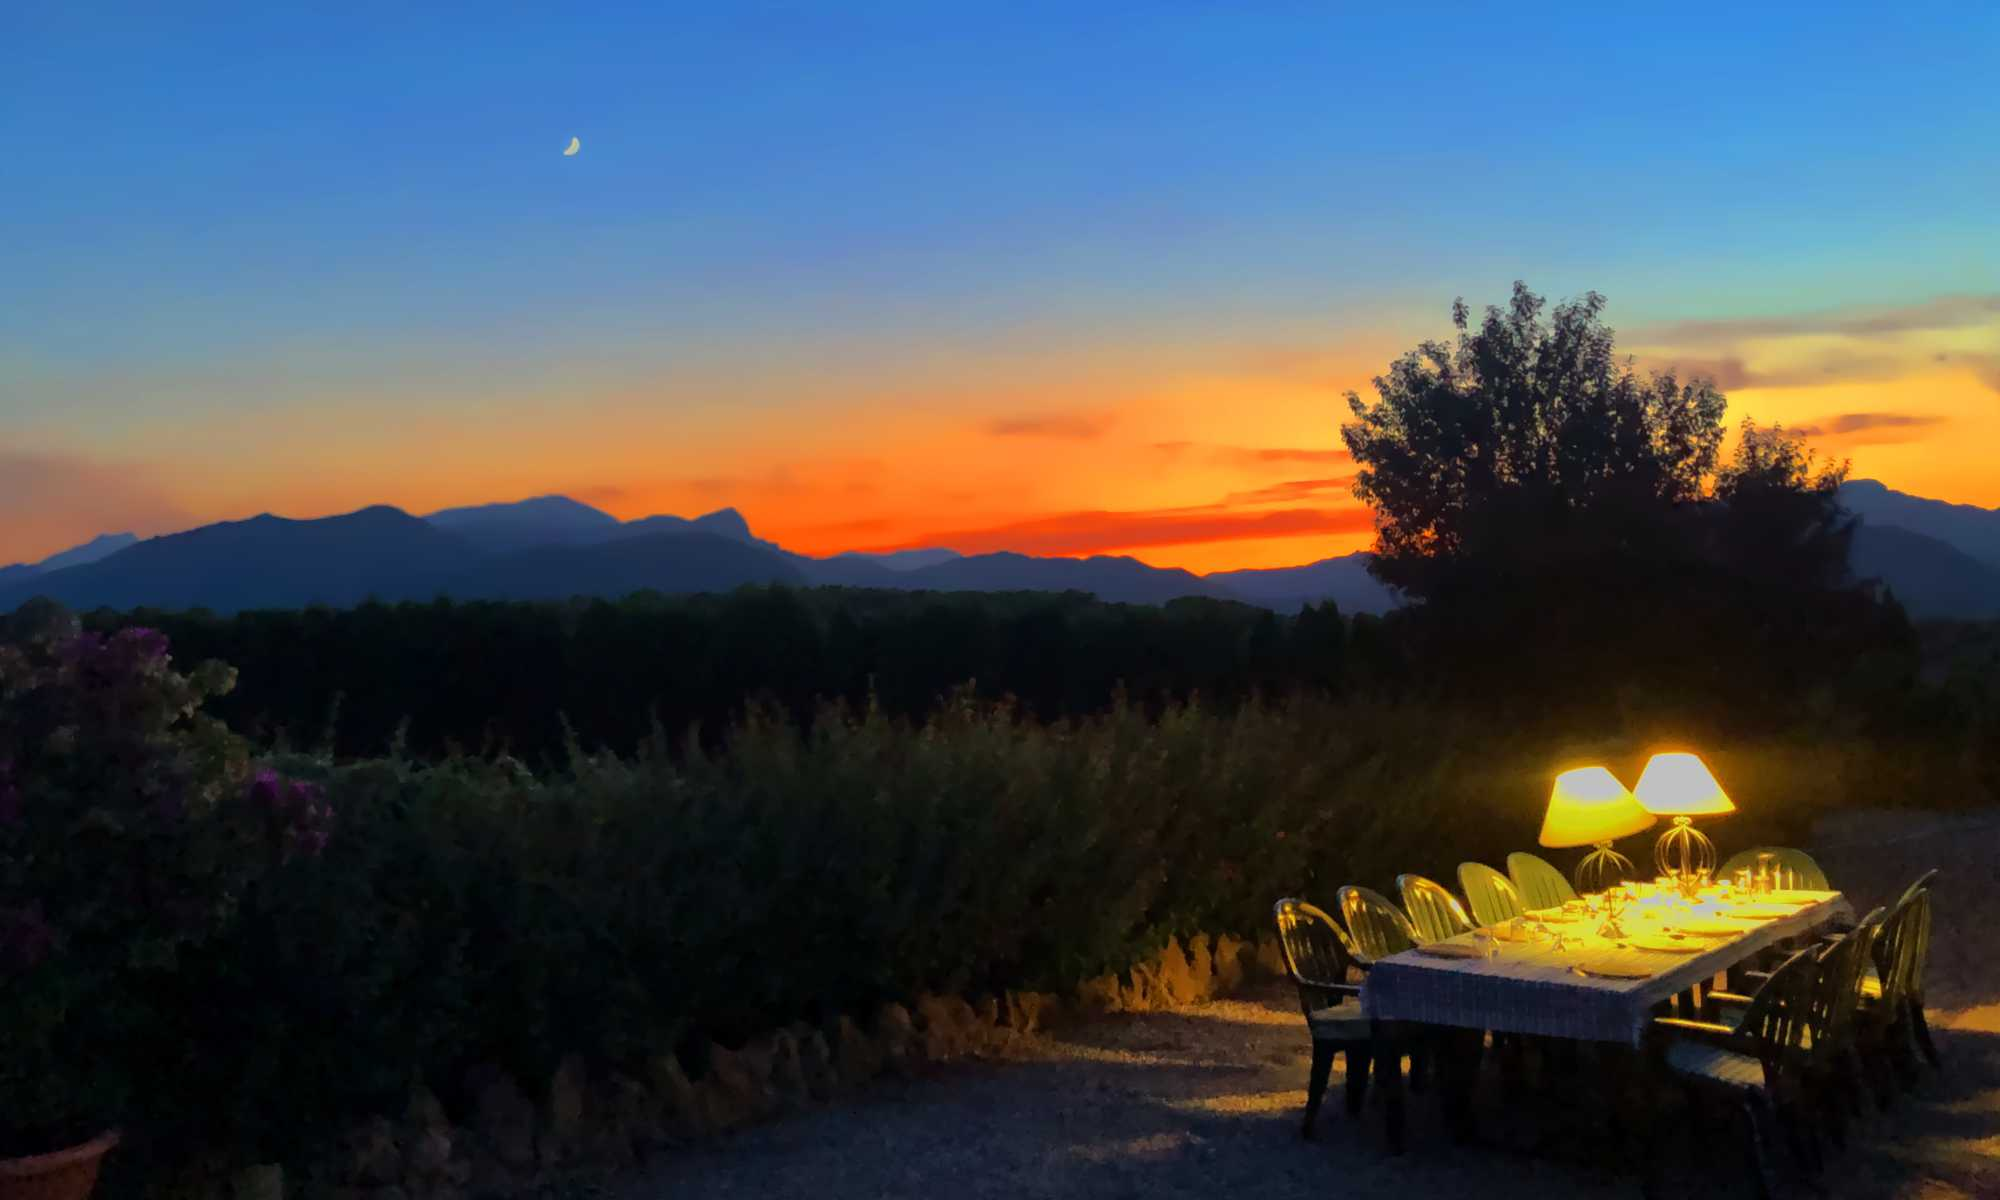 Villa catering services in Pollensa - Outdoor dining table at Sunset in Pollensa Mallorca